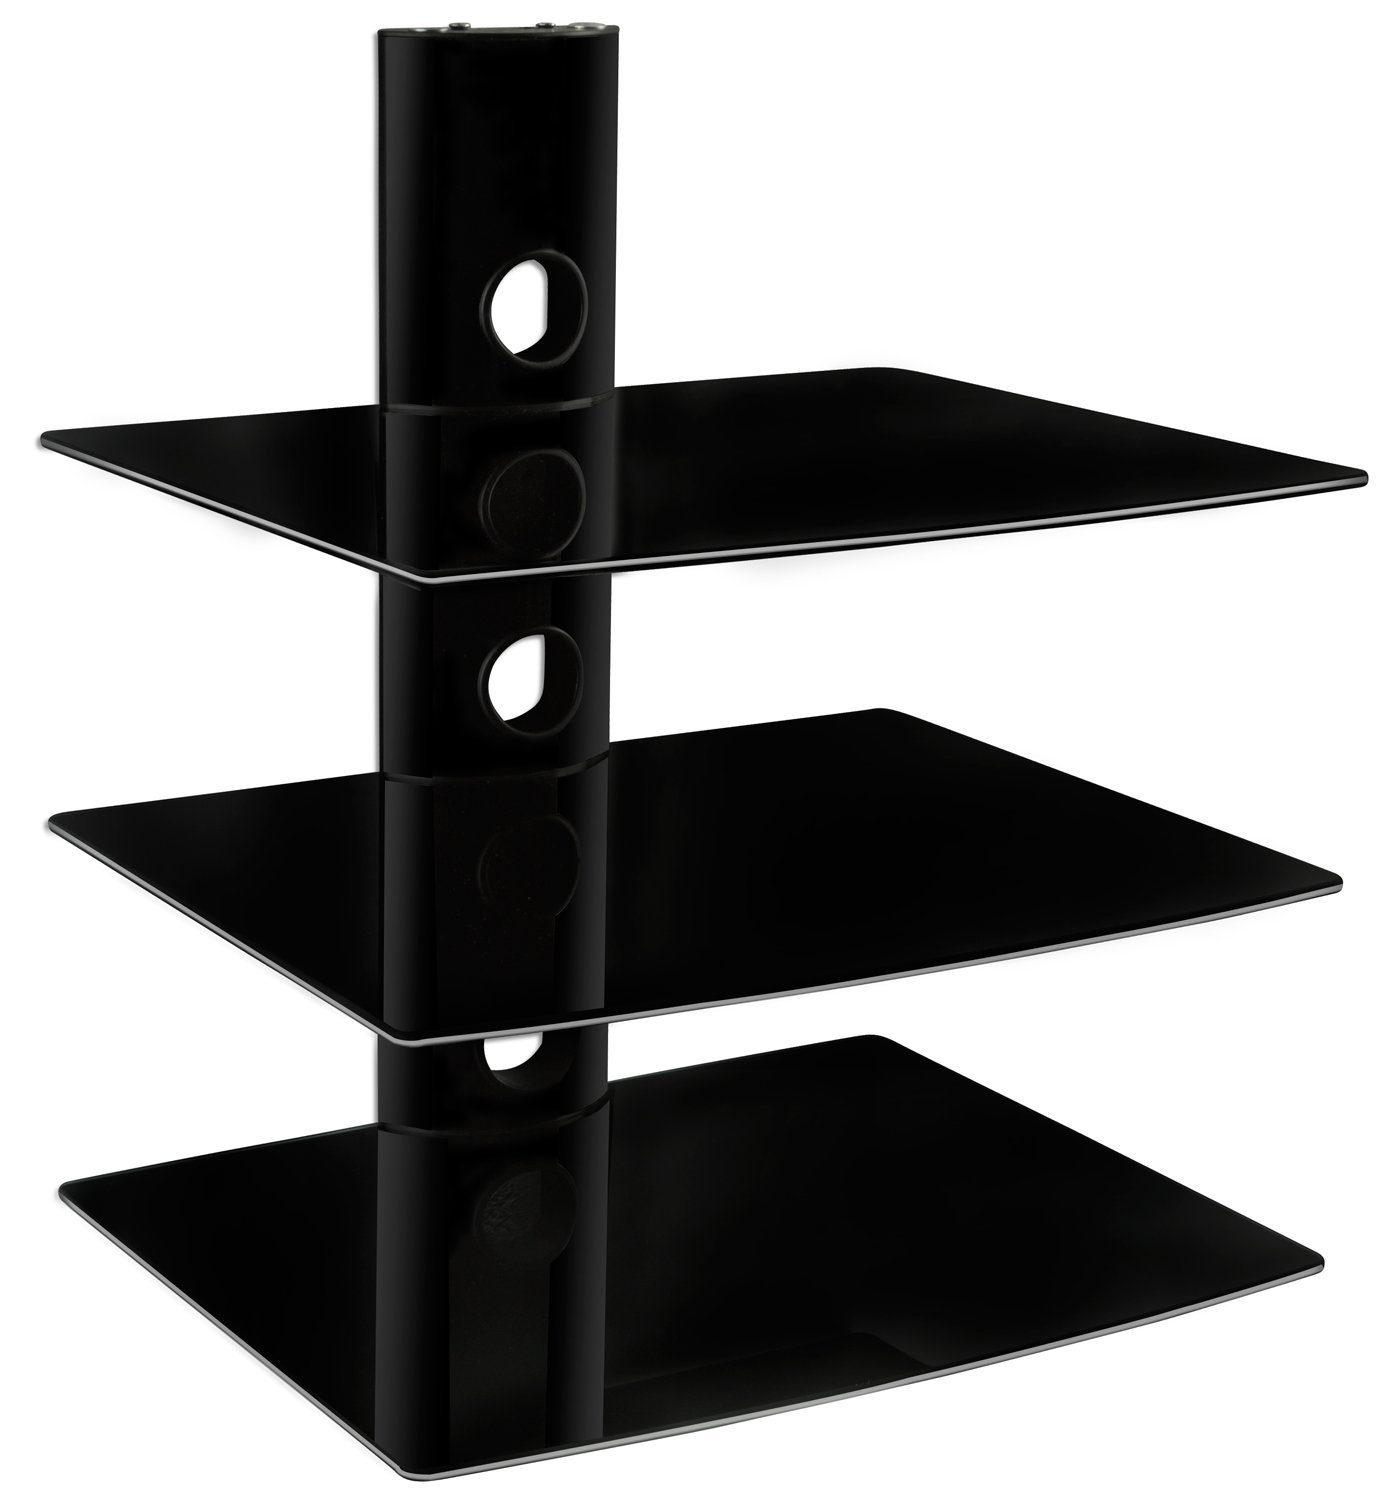 Amazon Mount It Mi 803 Floating Wall Mounted Shelf Bracket With Glass Floating Shelves For Dvd Player (#1 of 12)